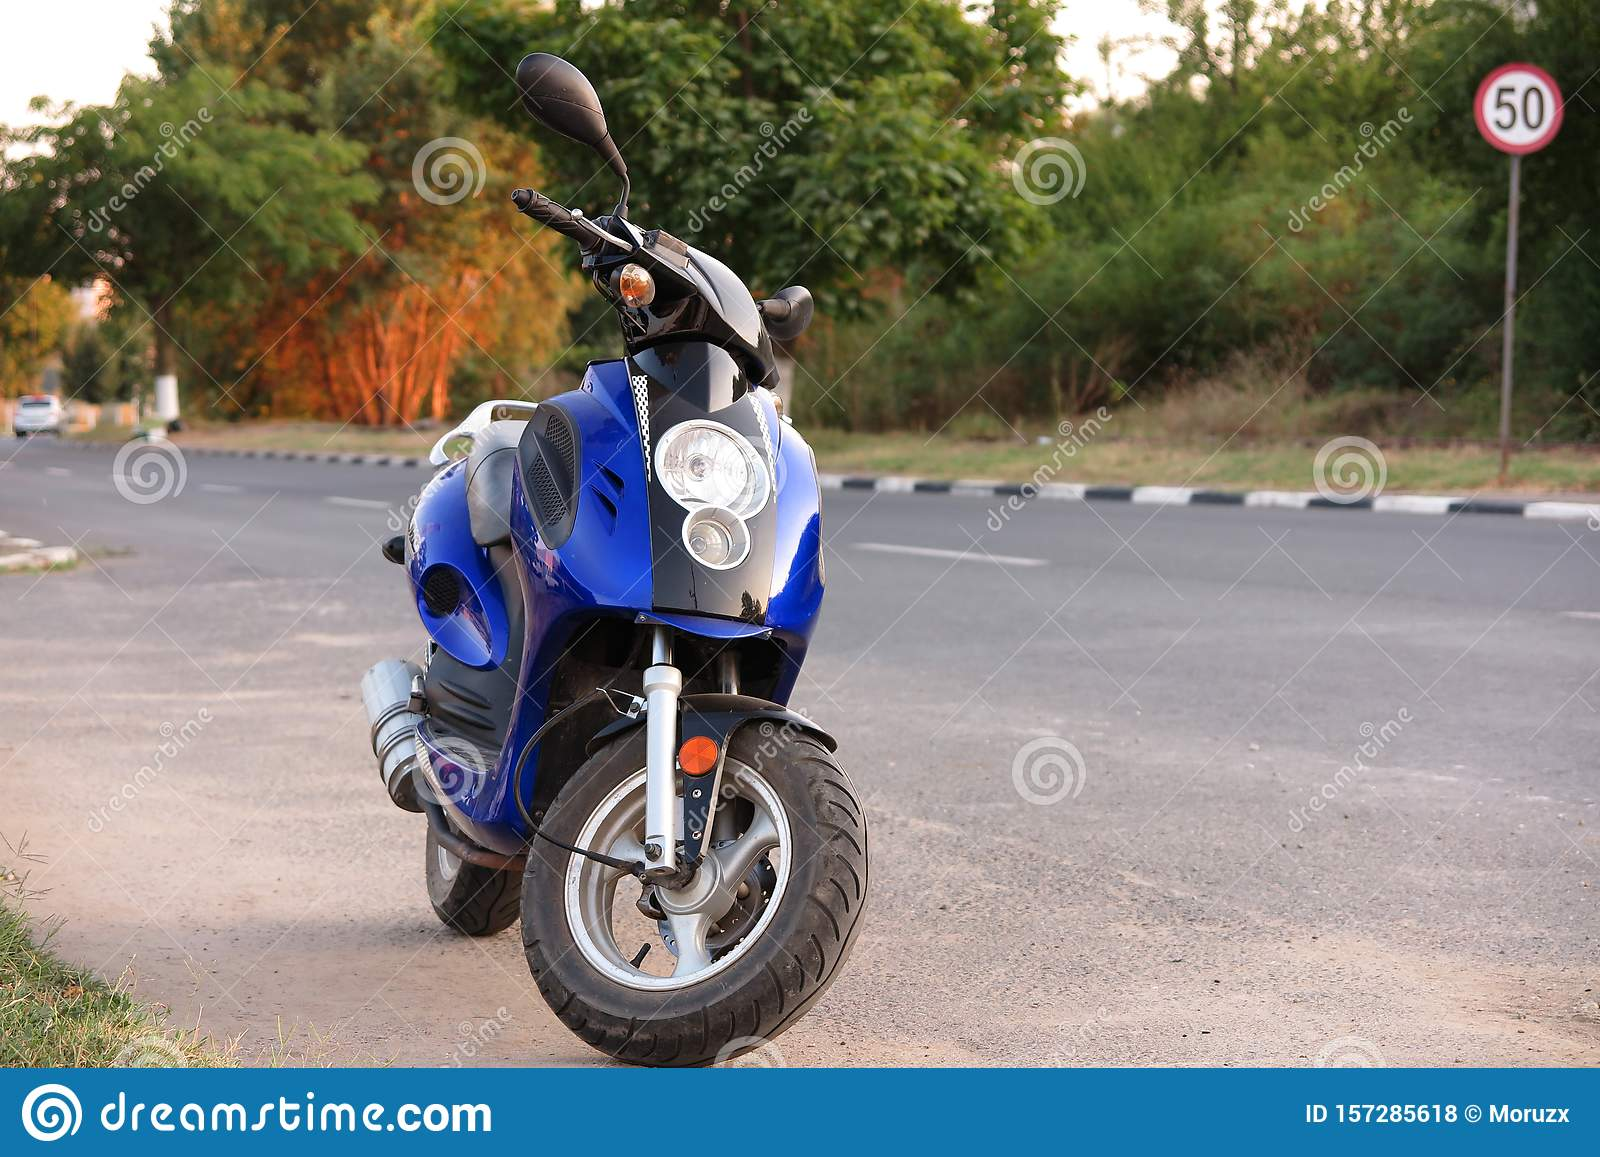 Scooter Moped Near A 50 Km/h Speed Limit Indicator Stock